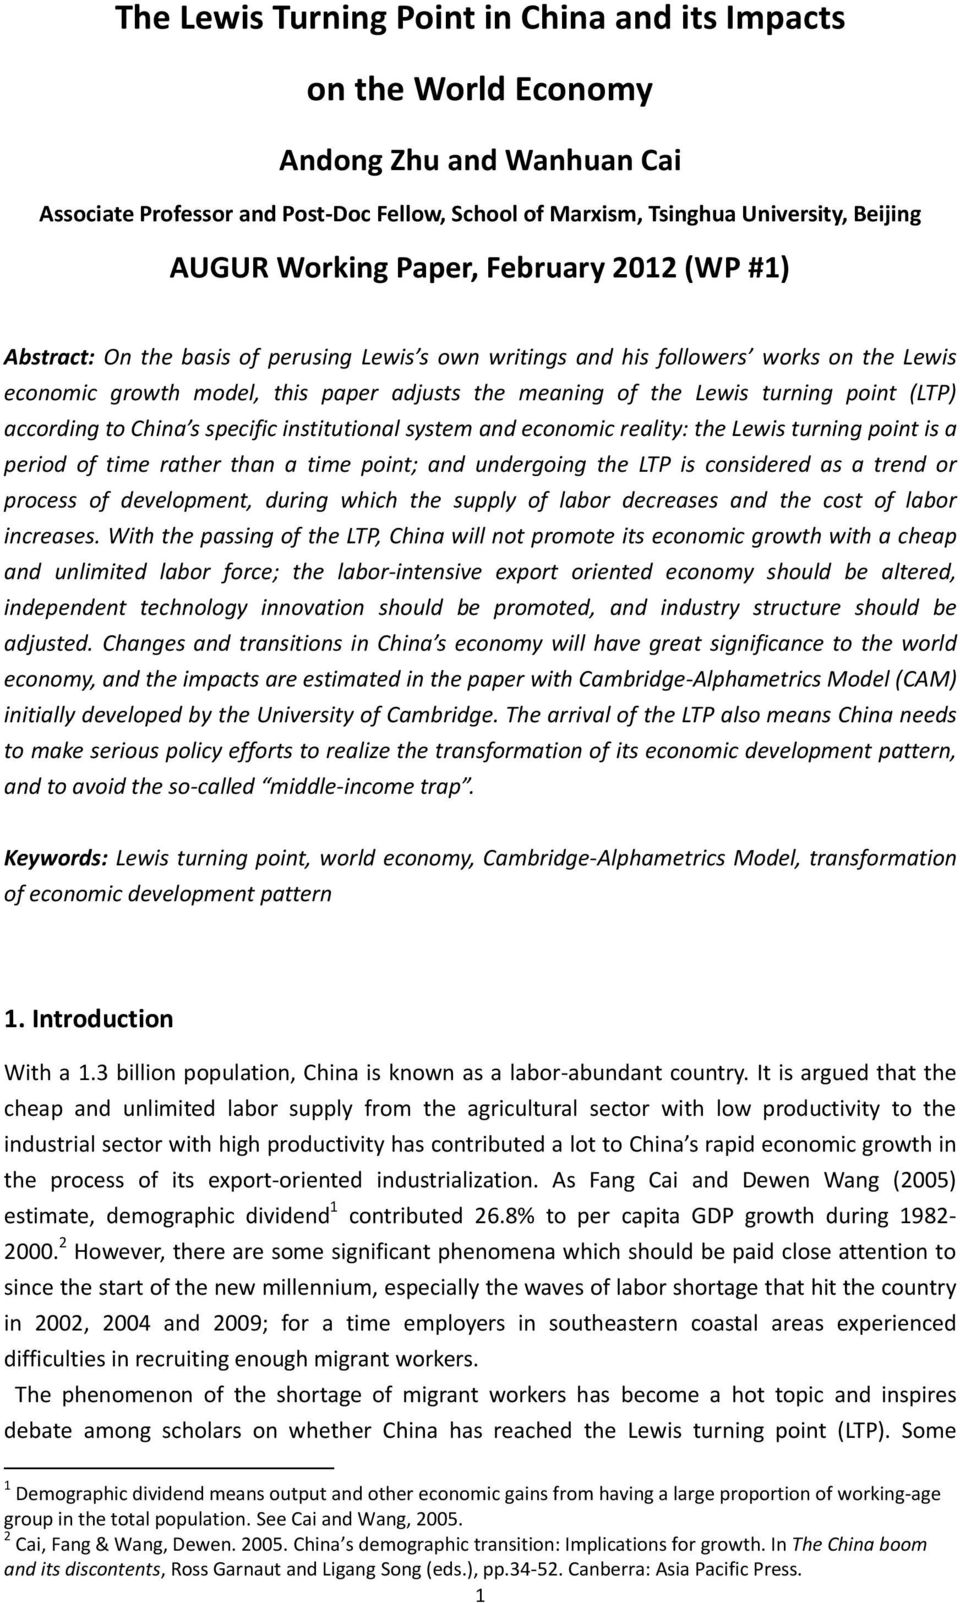 point (LTP) according to China s specific institutional system and economic reality: the Lewis turning point is a period of time rather than a time point; and undergoing the LTP is considered as a